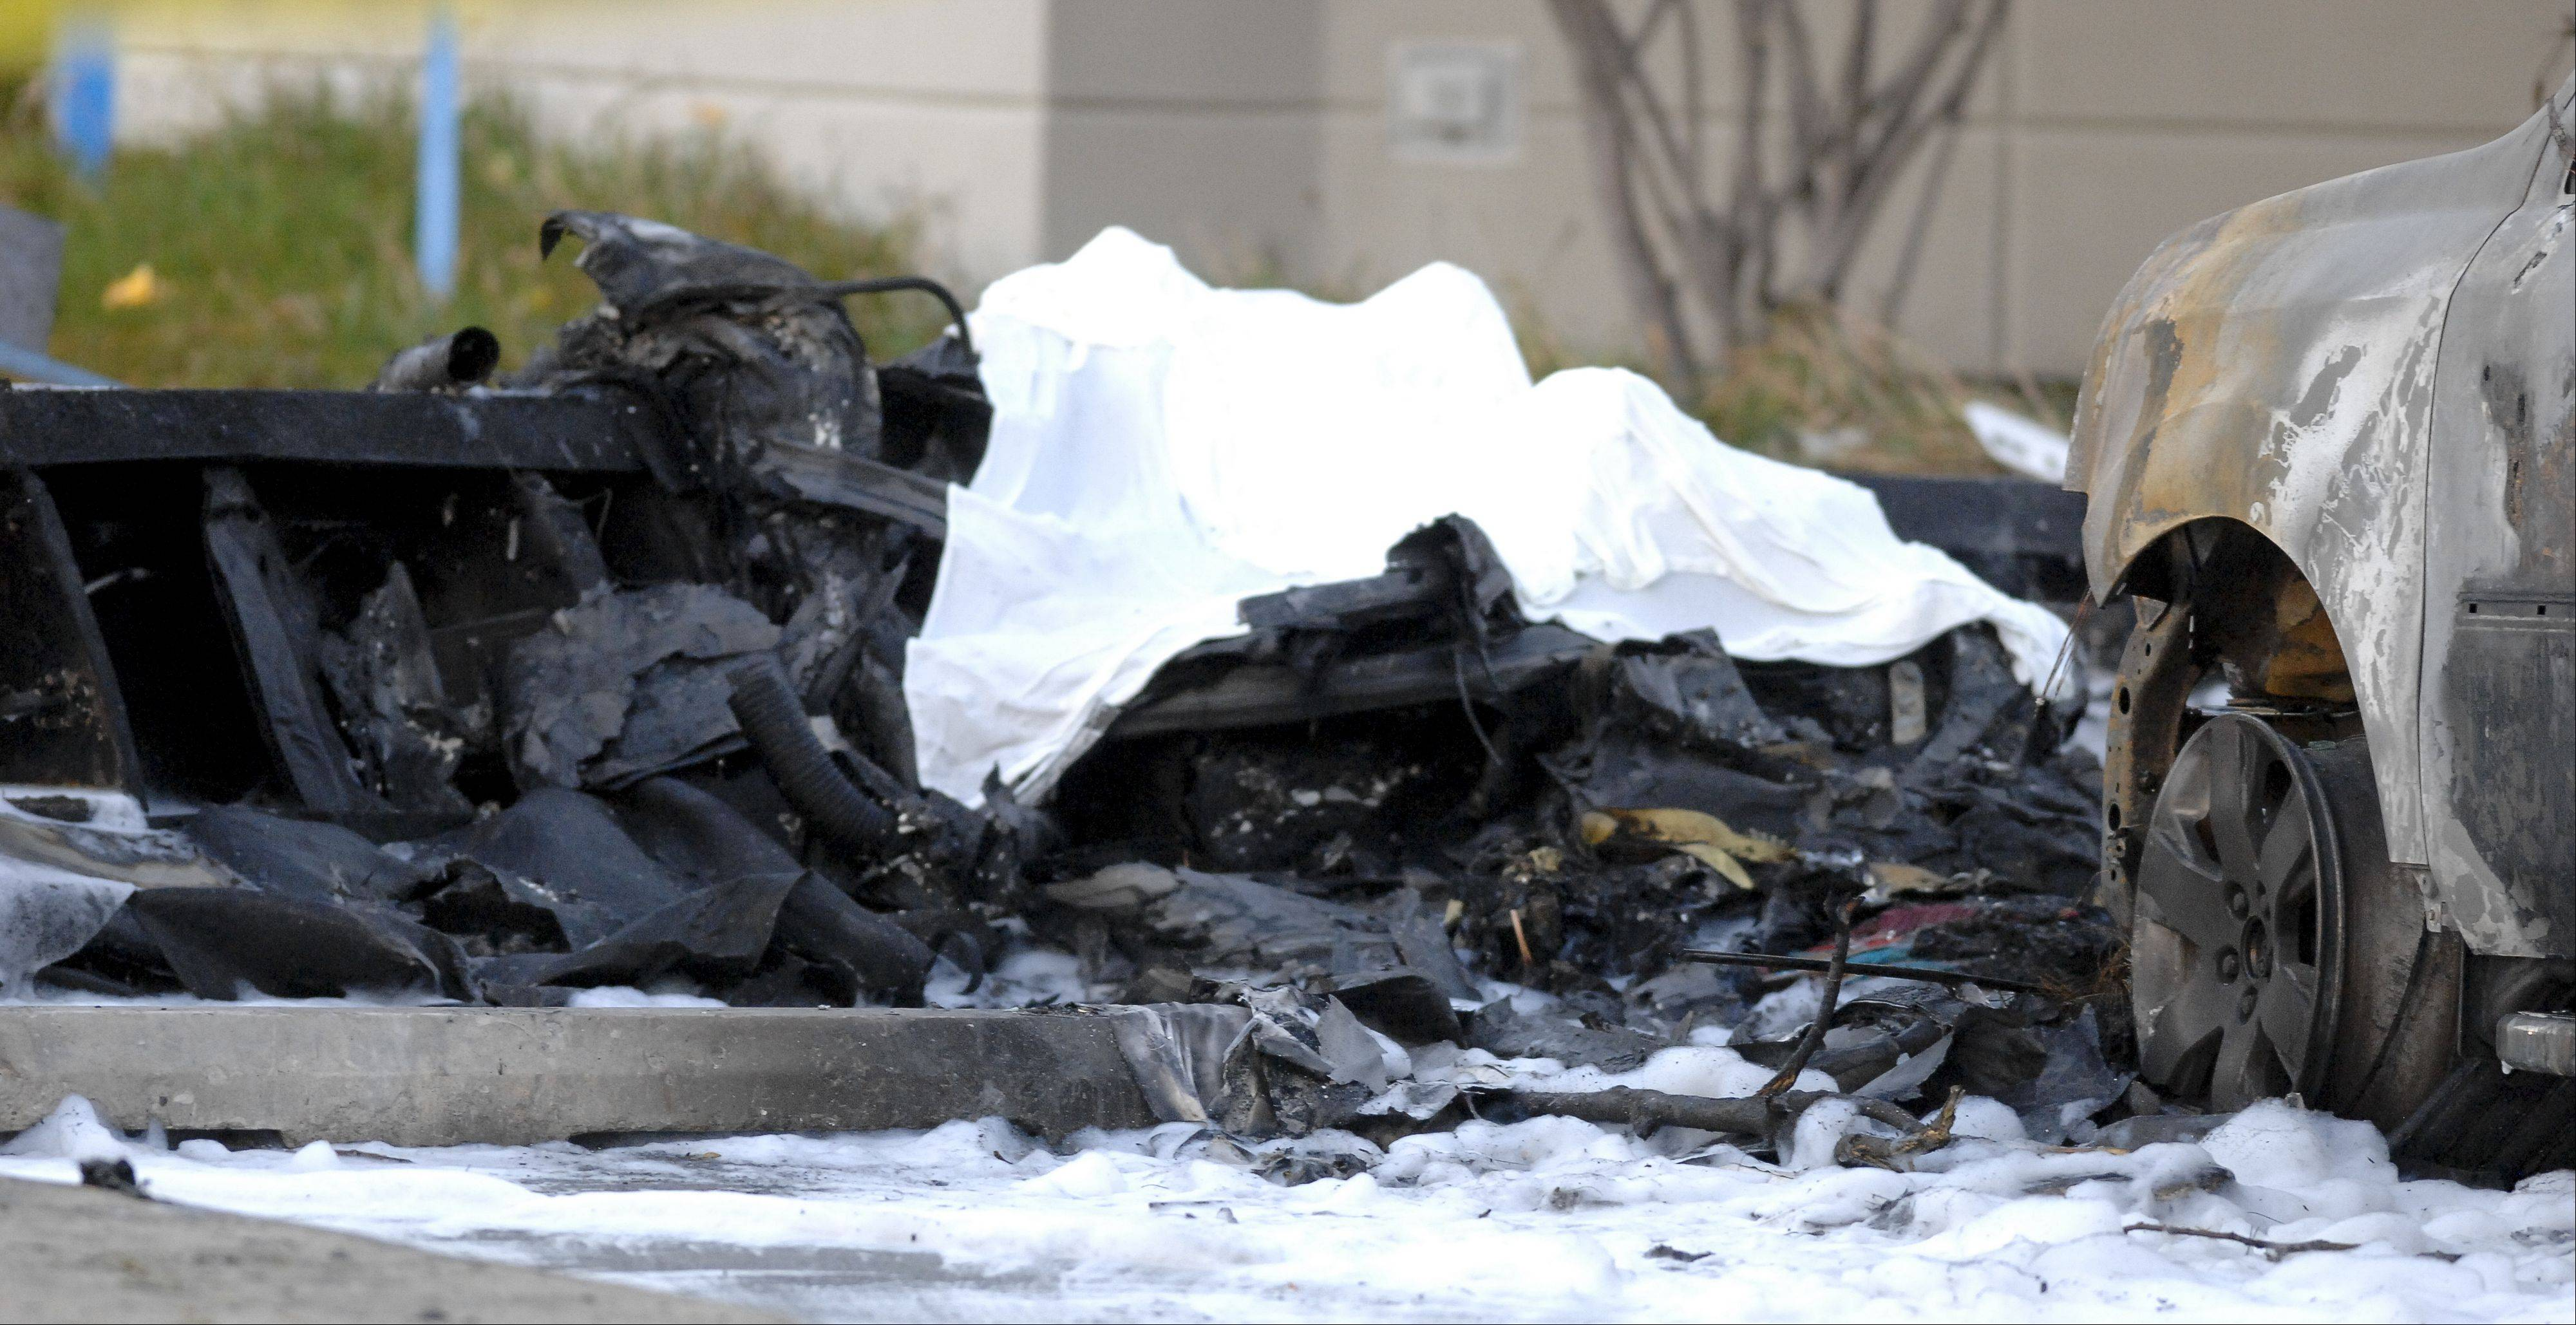 A white sheet covers part of what remains of a small plane that crashed Wednesday in the parking lot of a Chase bank on Weber Road near the Clow International Airport in Bolingbrook.